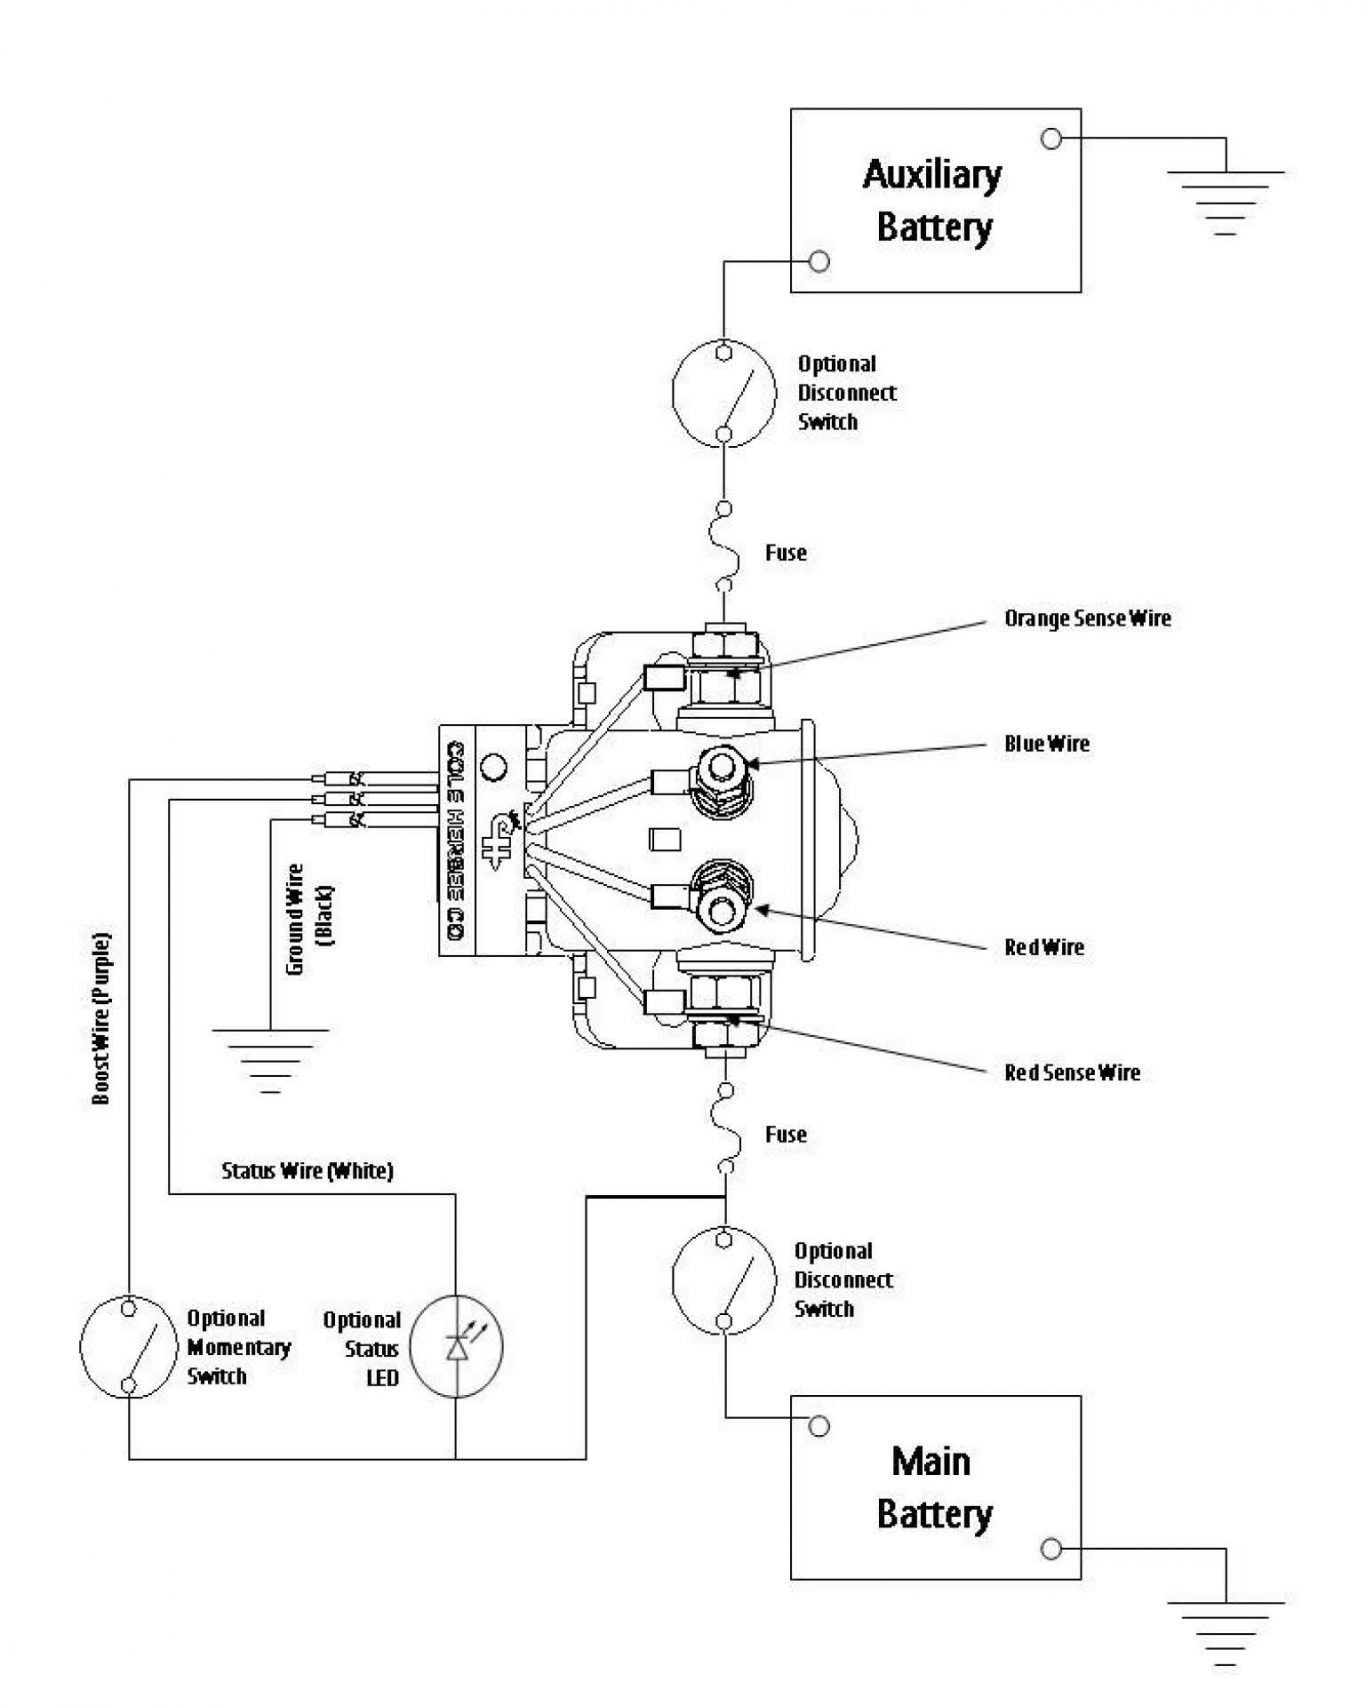 Double Pole toggle Switch Wiring Diagram Double Pole toggle Switch Wiring Diagram Electrical Circuit Wiring Of Double Pole toggle Switch Wiring Diagram